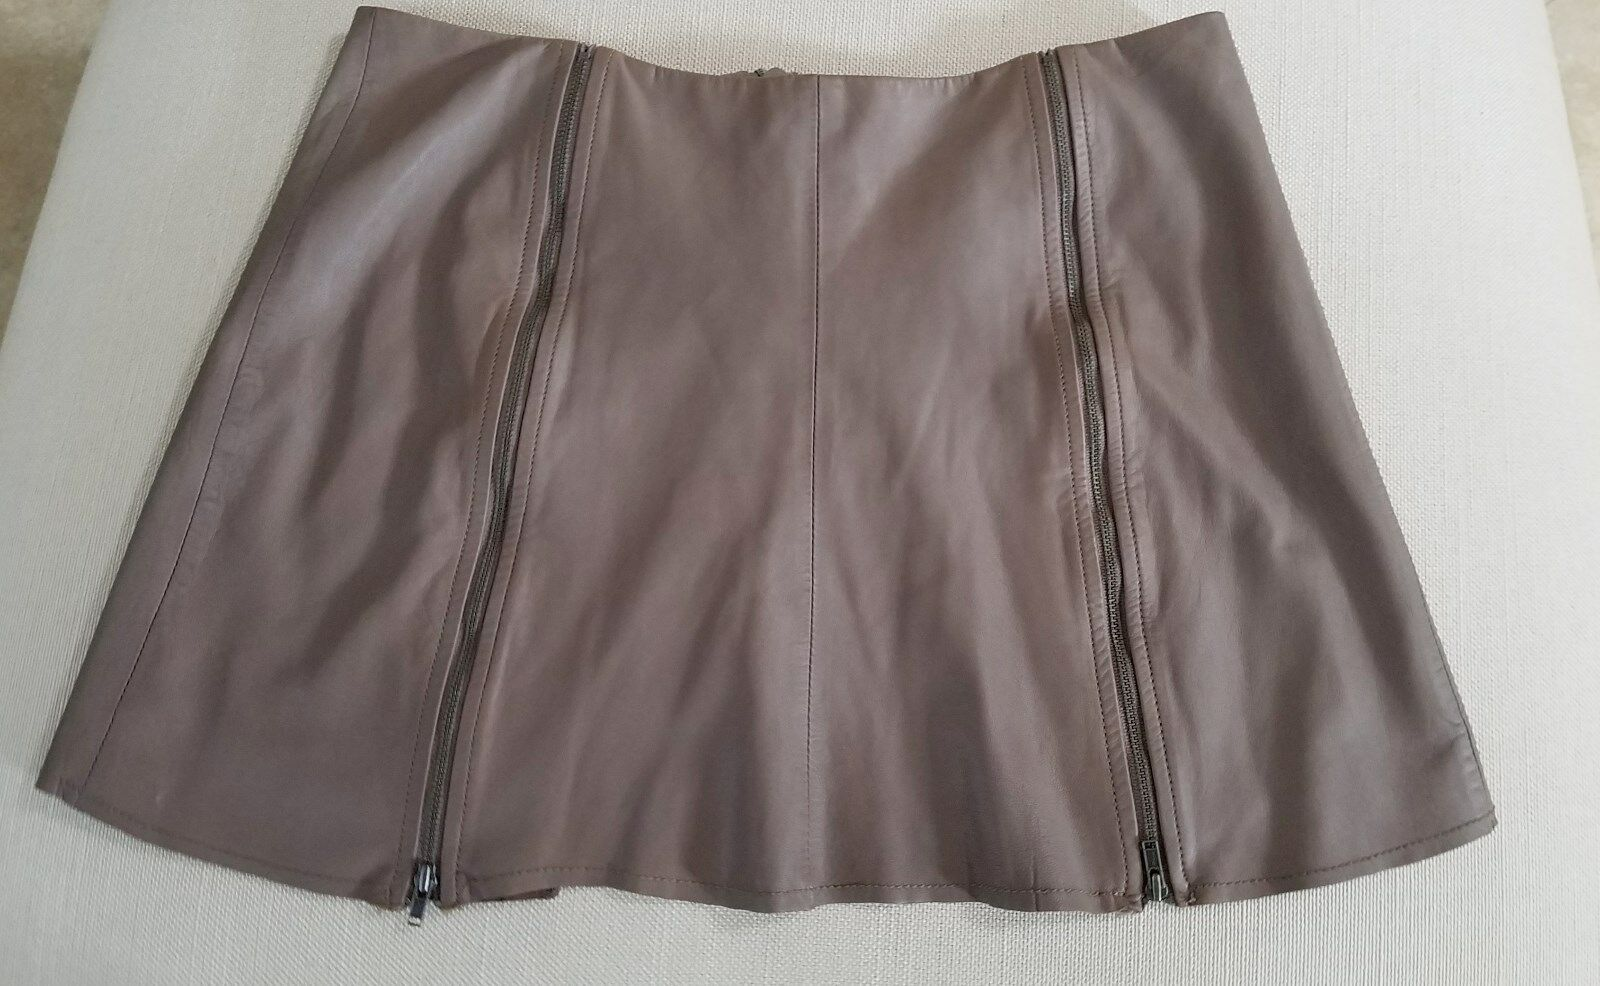 JOIE Mini Skirt Women's Size Small Very Soft Leather  EUC